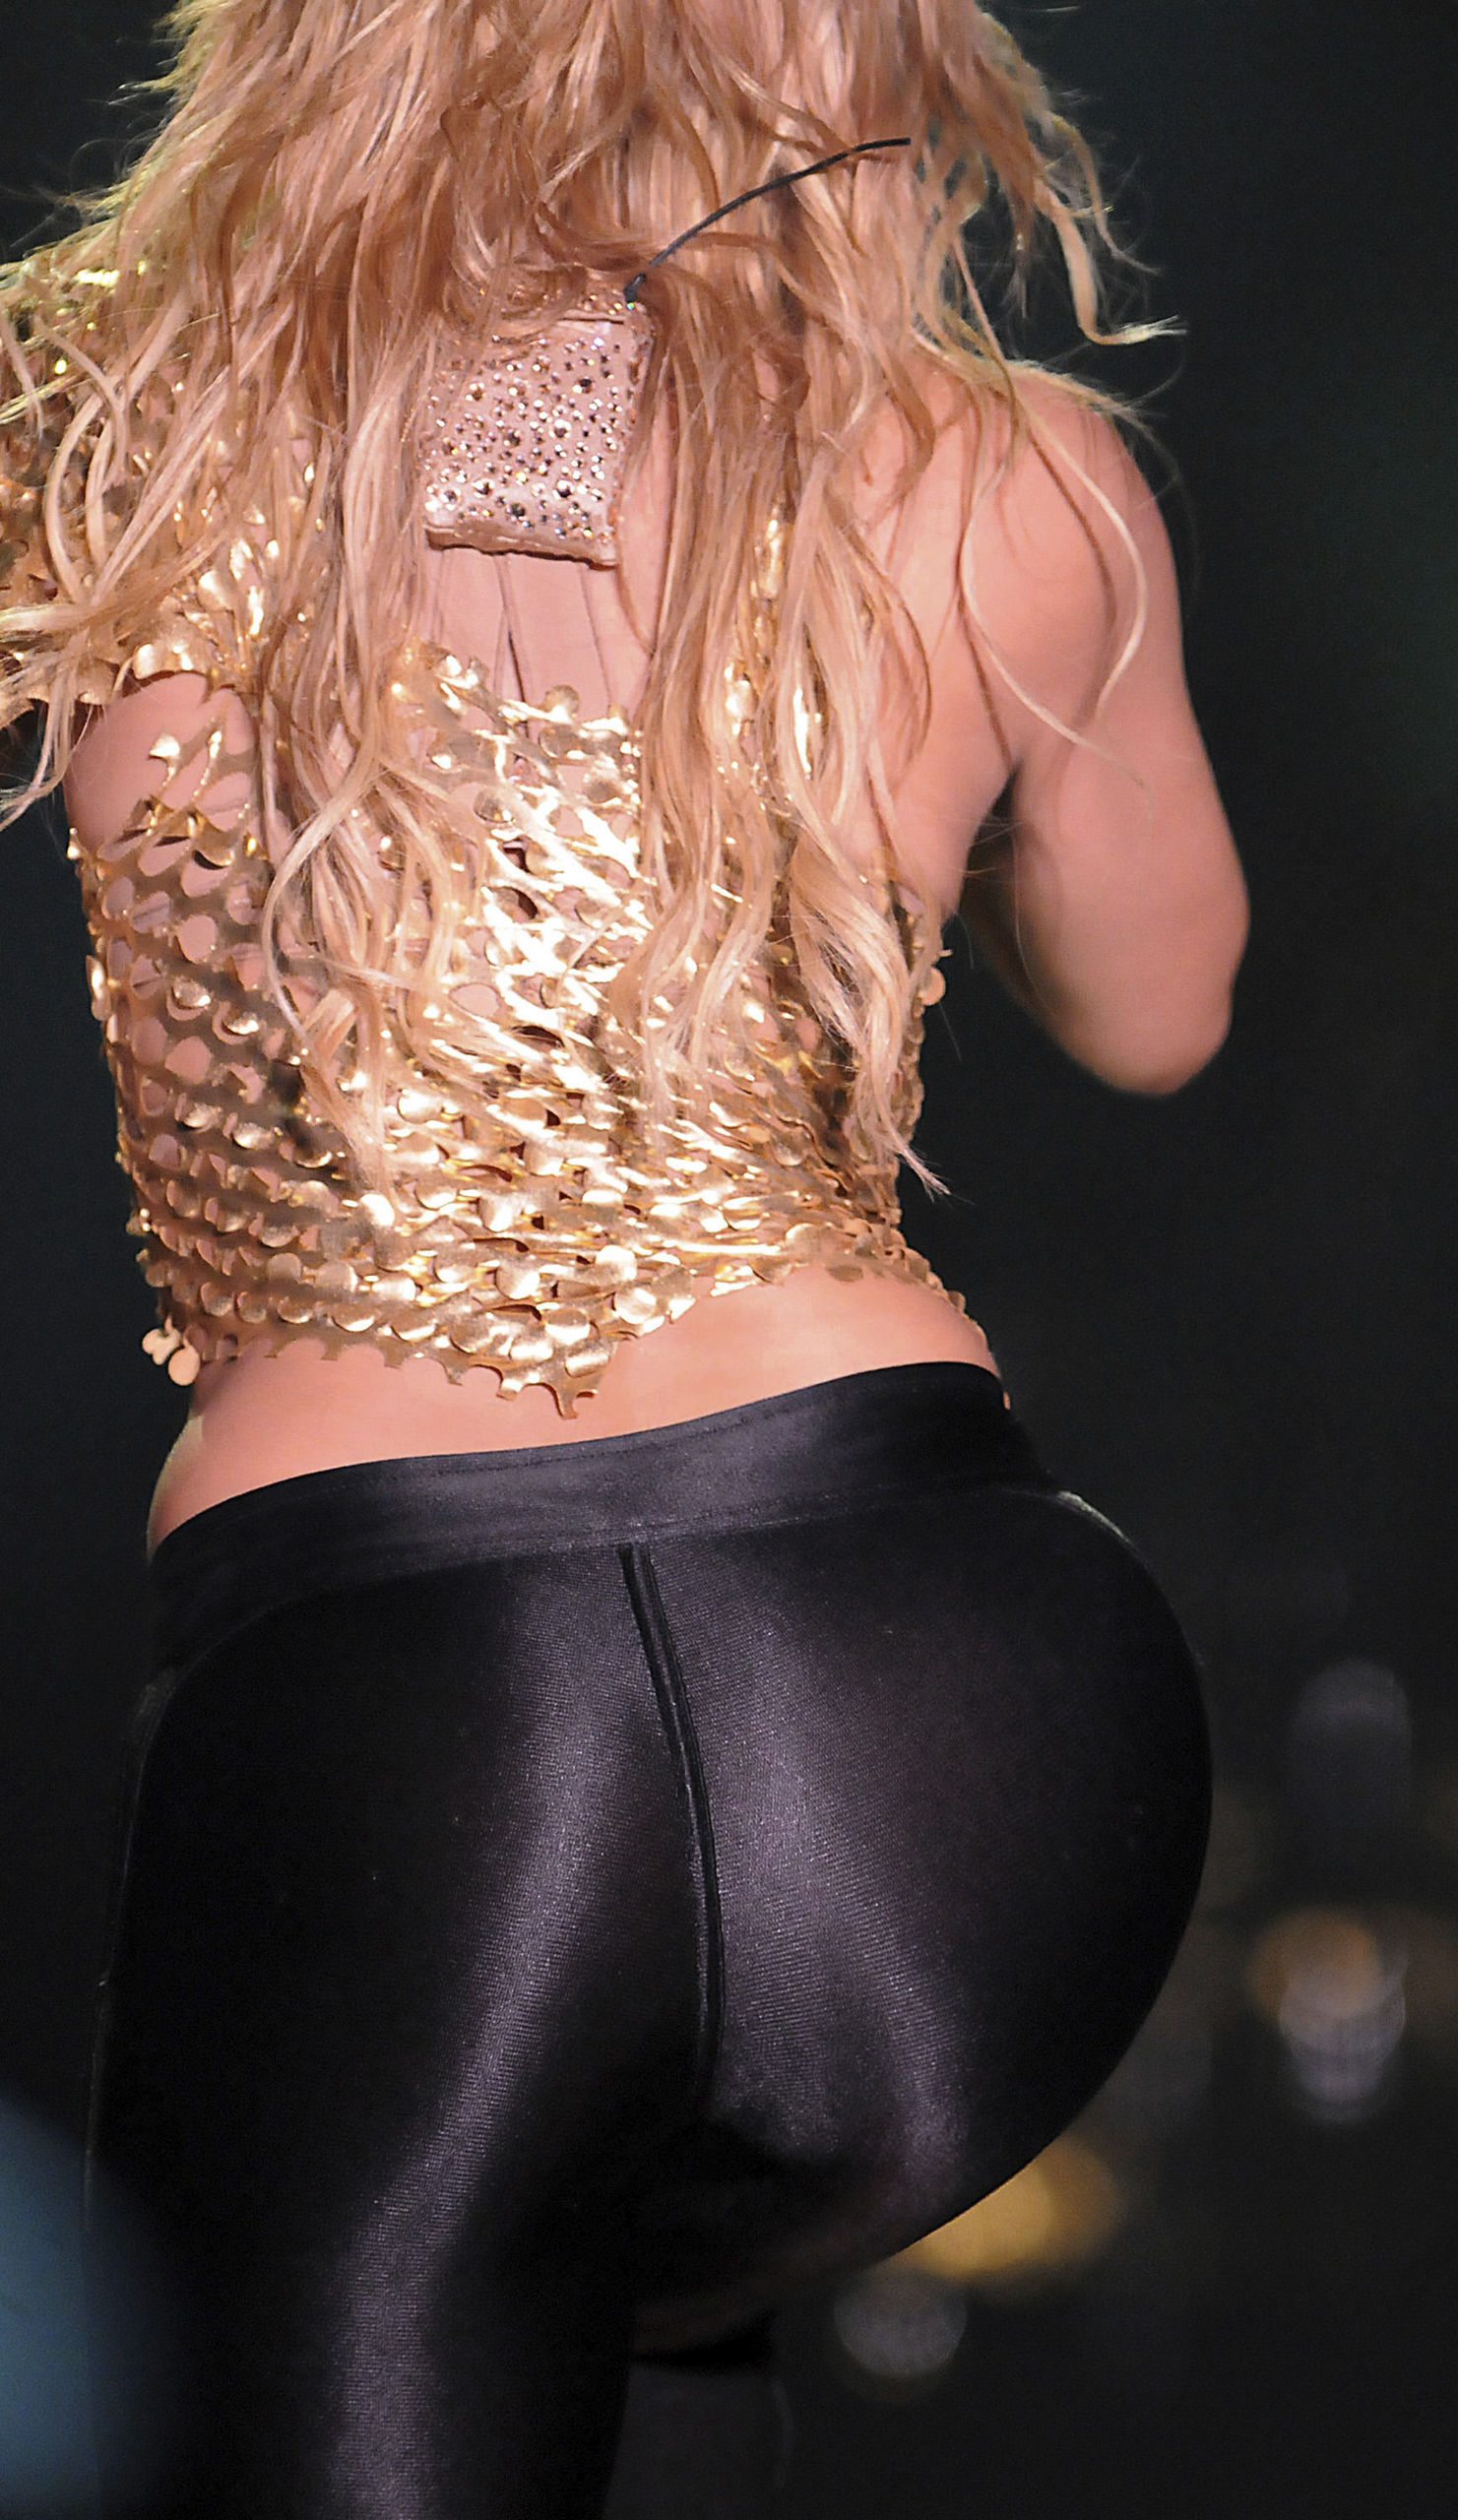 shakira big ass big picture